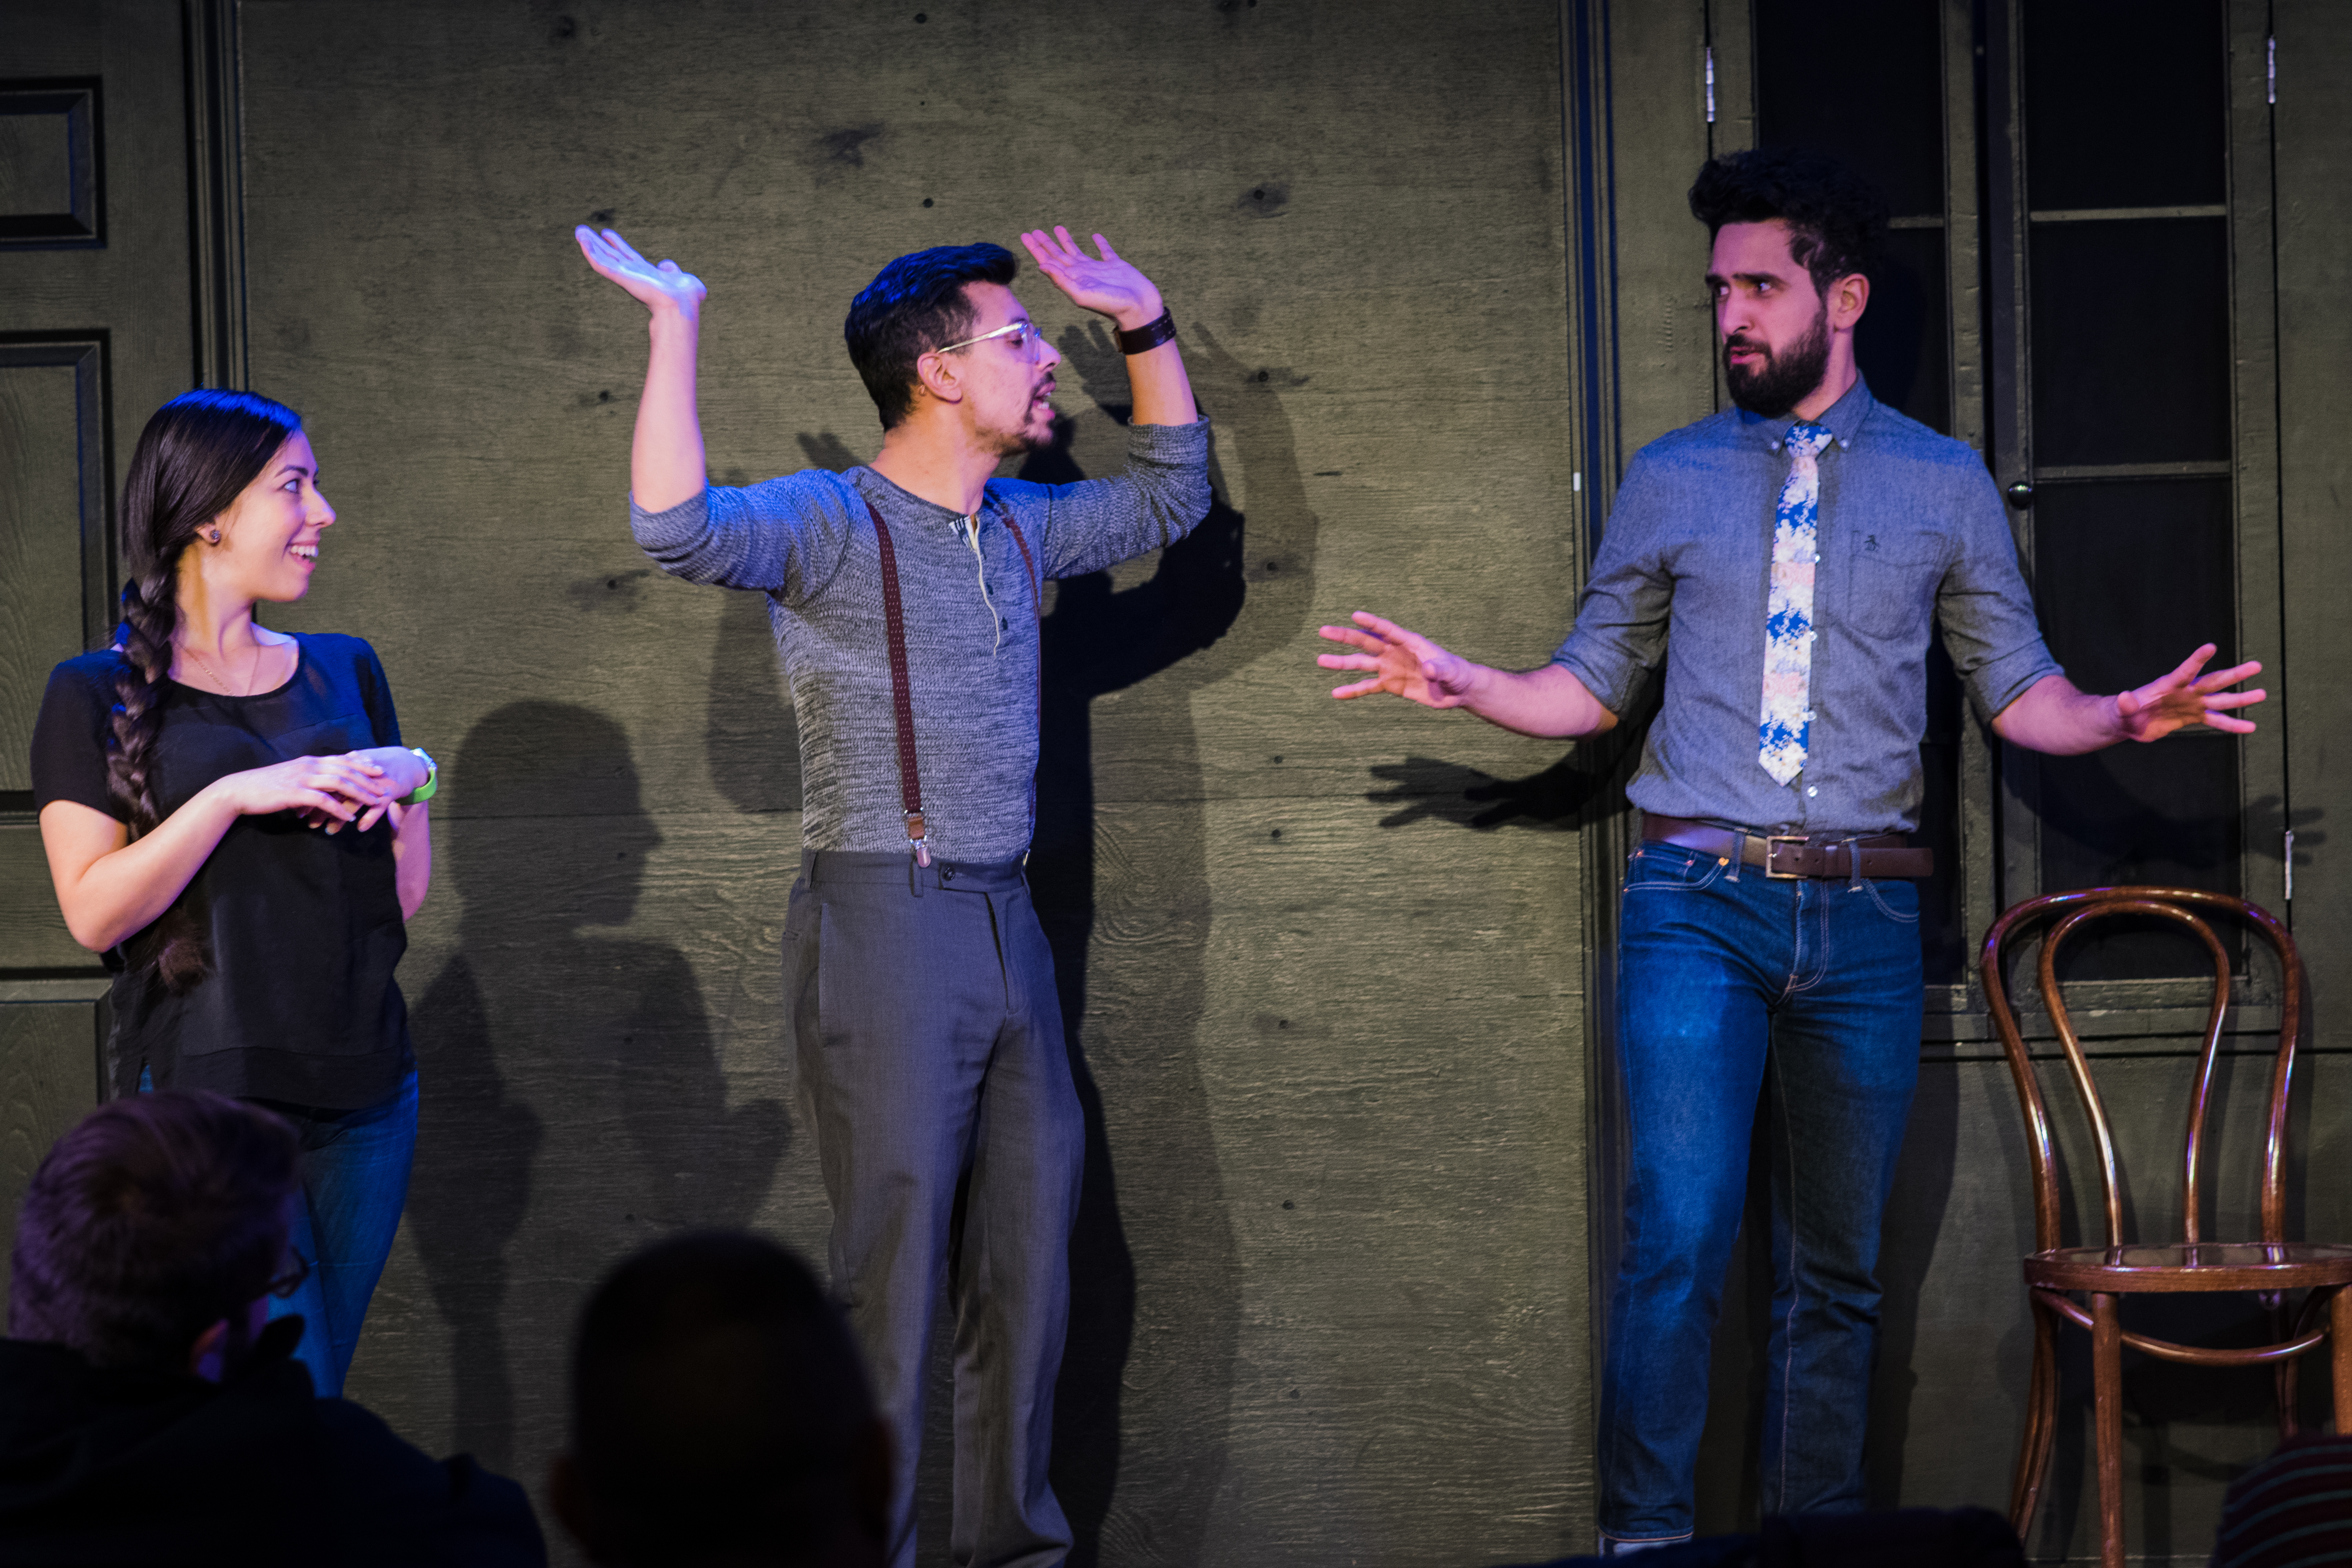 This is a medium-long-shot of the performers standing in a line onstage. At left, Tawny smiles and folds hands while looking toward Elias and Aaron. Elias and Aaron look at each other. Elias's hands are thrown up in the air and Aaron's are spread to the side. The backs of audience members' heads are visible in the bottom of the frame. Behind the performers is the black wall of the stage, with part of a black, covered window, a black door, and a chair visible in the background.